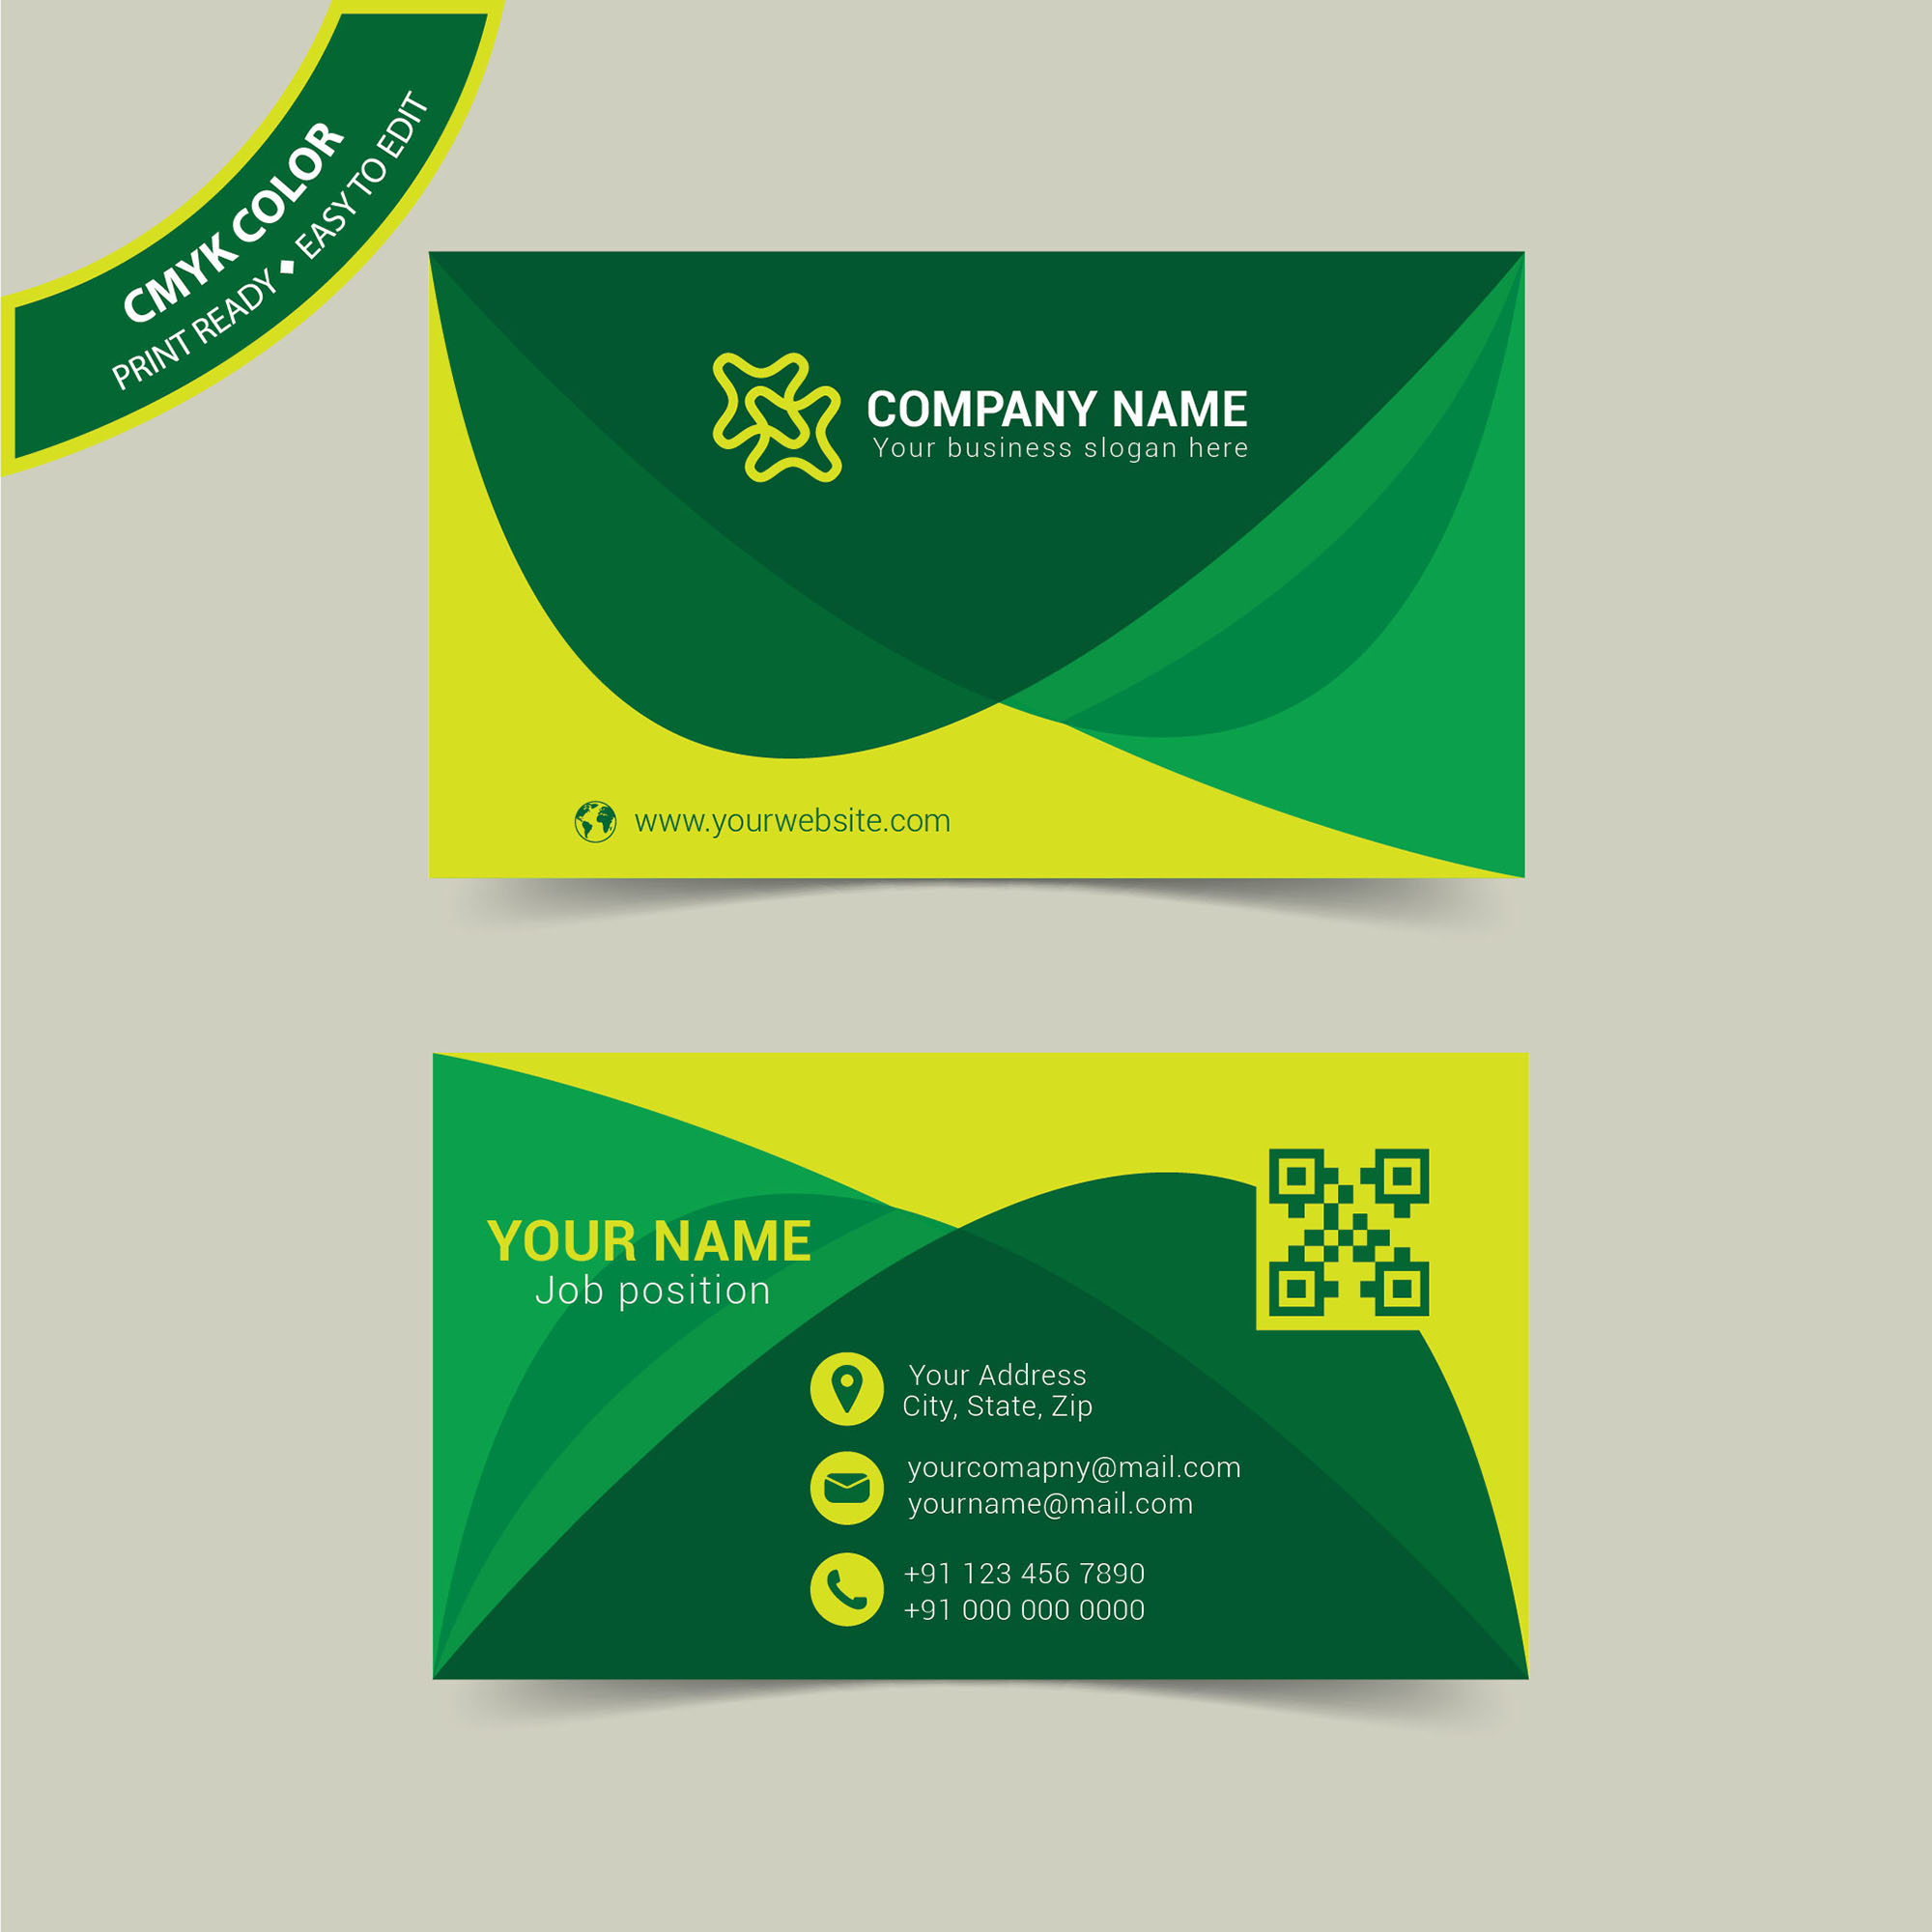 Elegant business card design free download wisxi business card business cards business card design business card template design templates wajeb Image collections